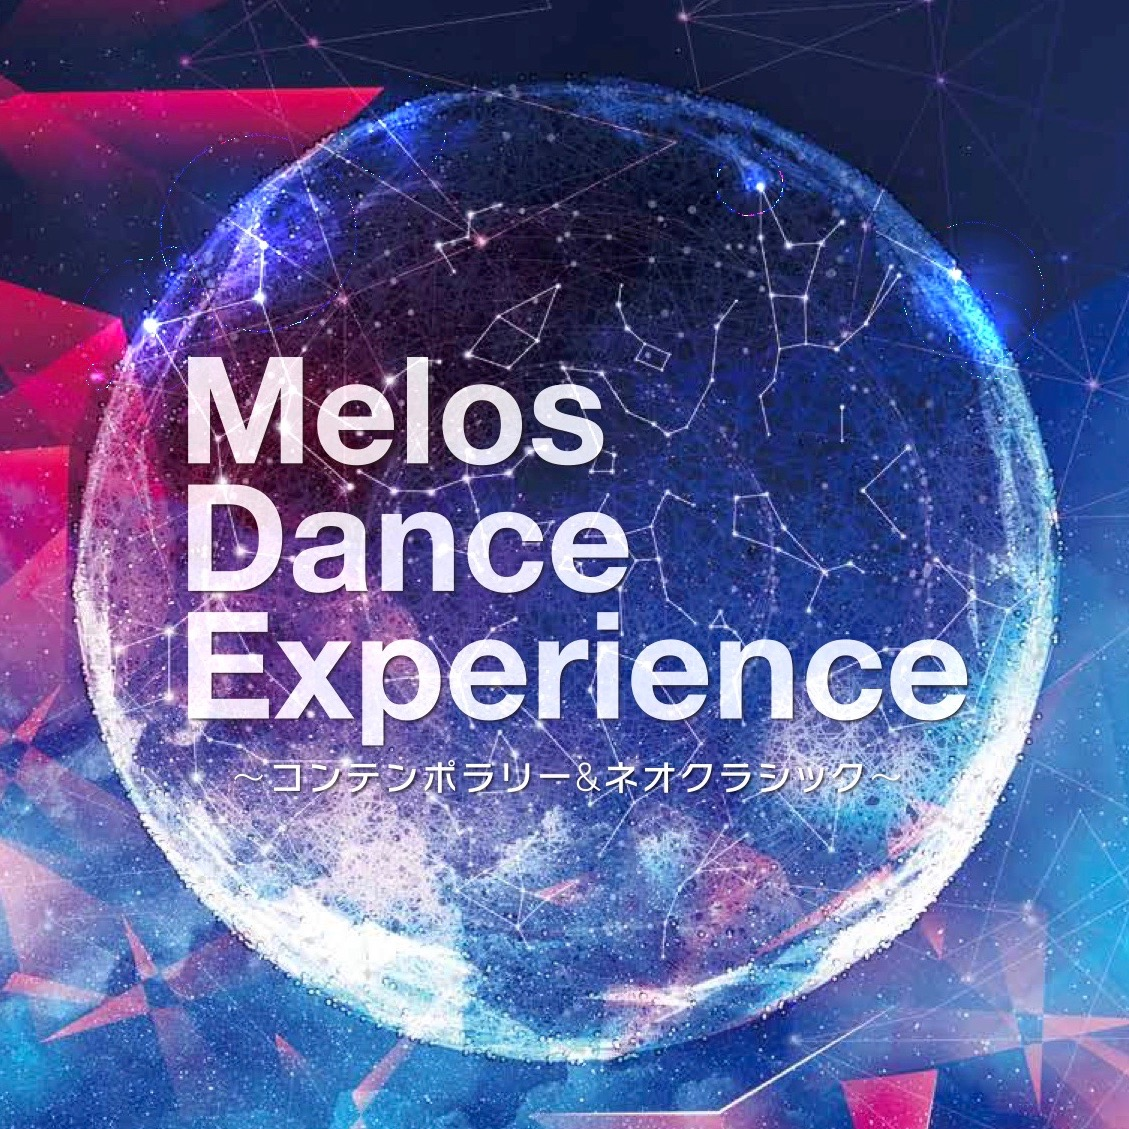 Melos Dance Experience 2020 公演開催決定のお知らせ